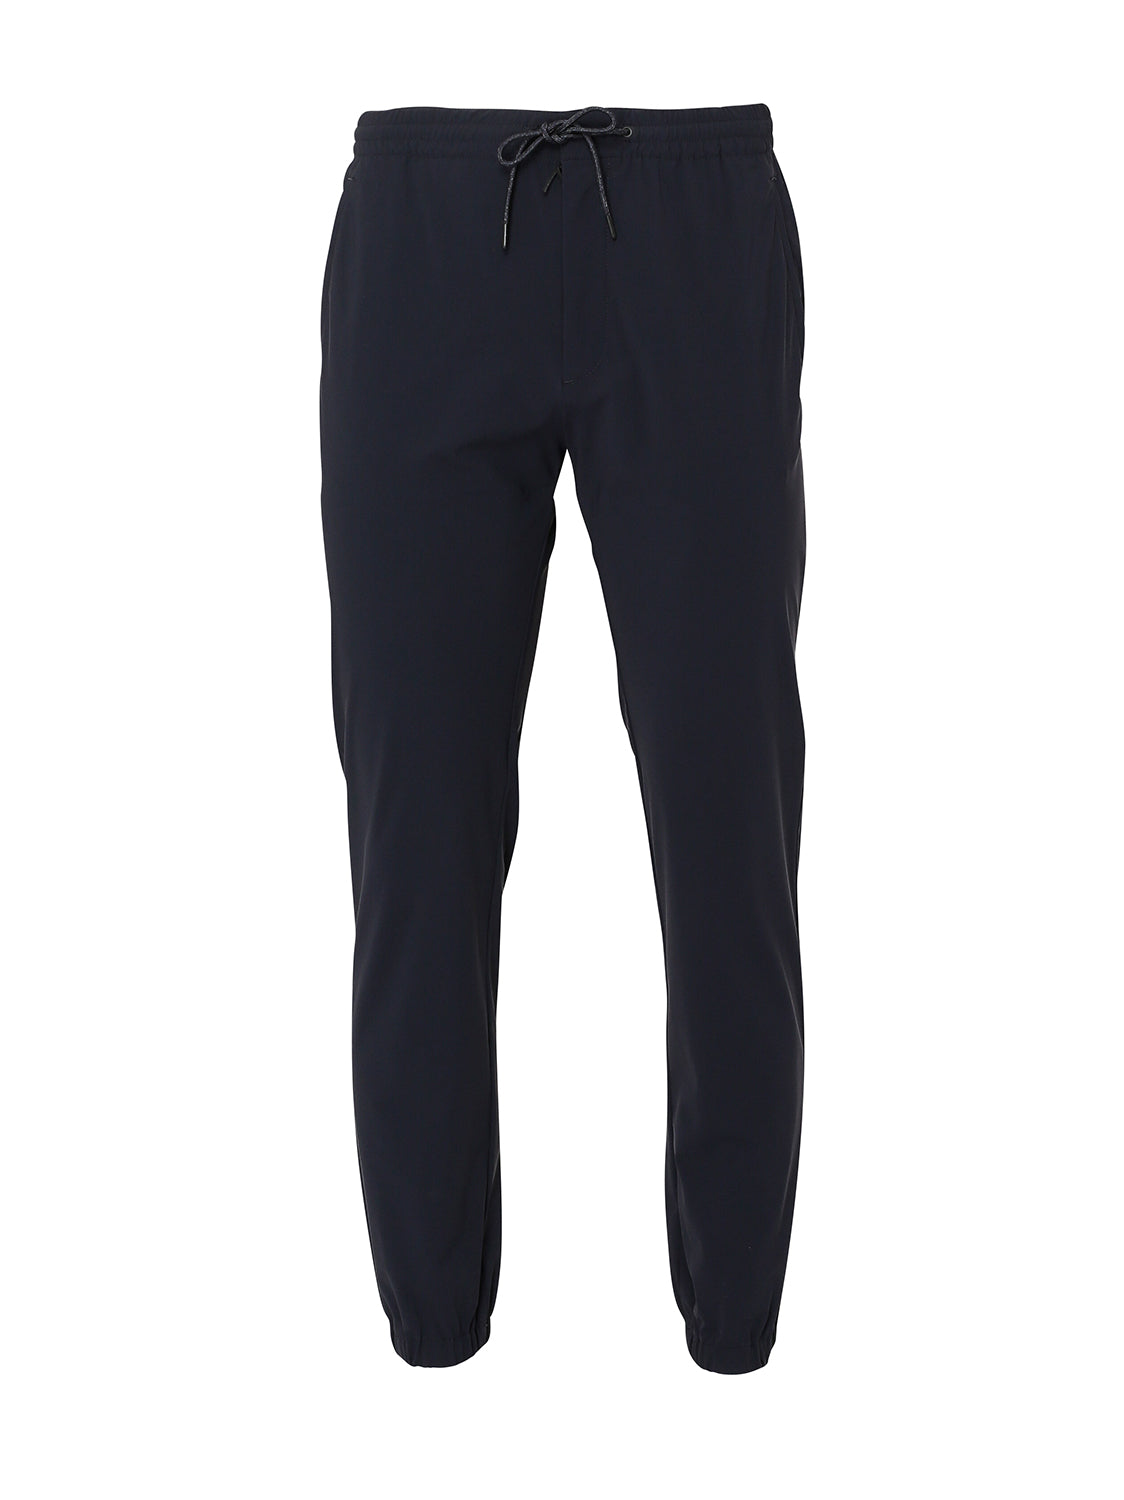 Z Zegna Sport Trouser (Navy) - Union 22